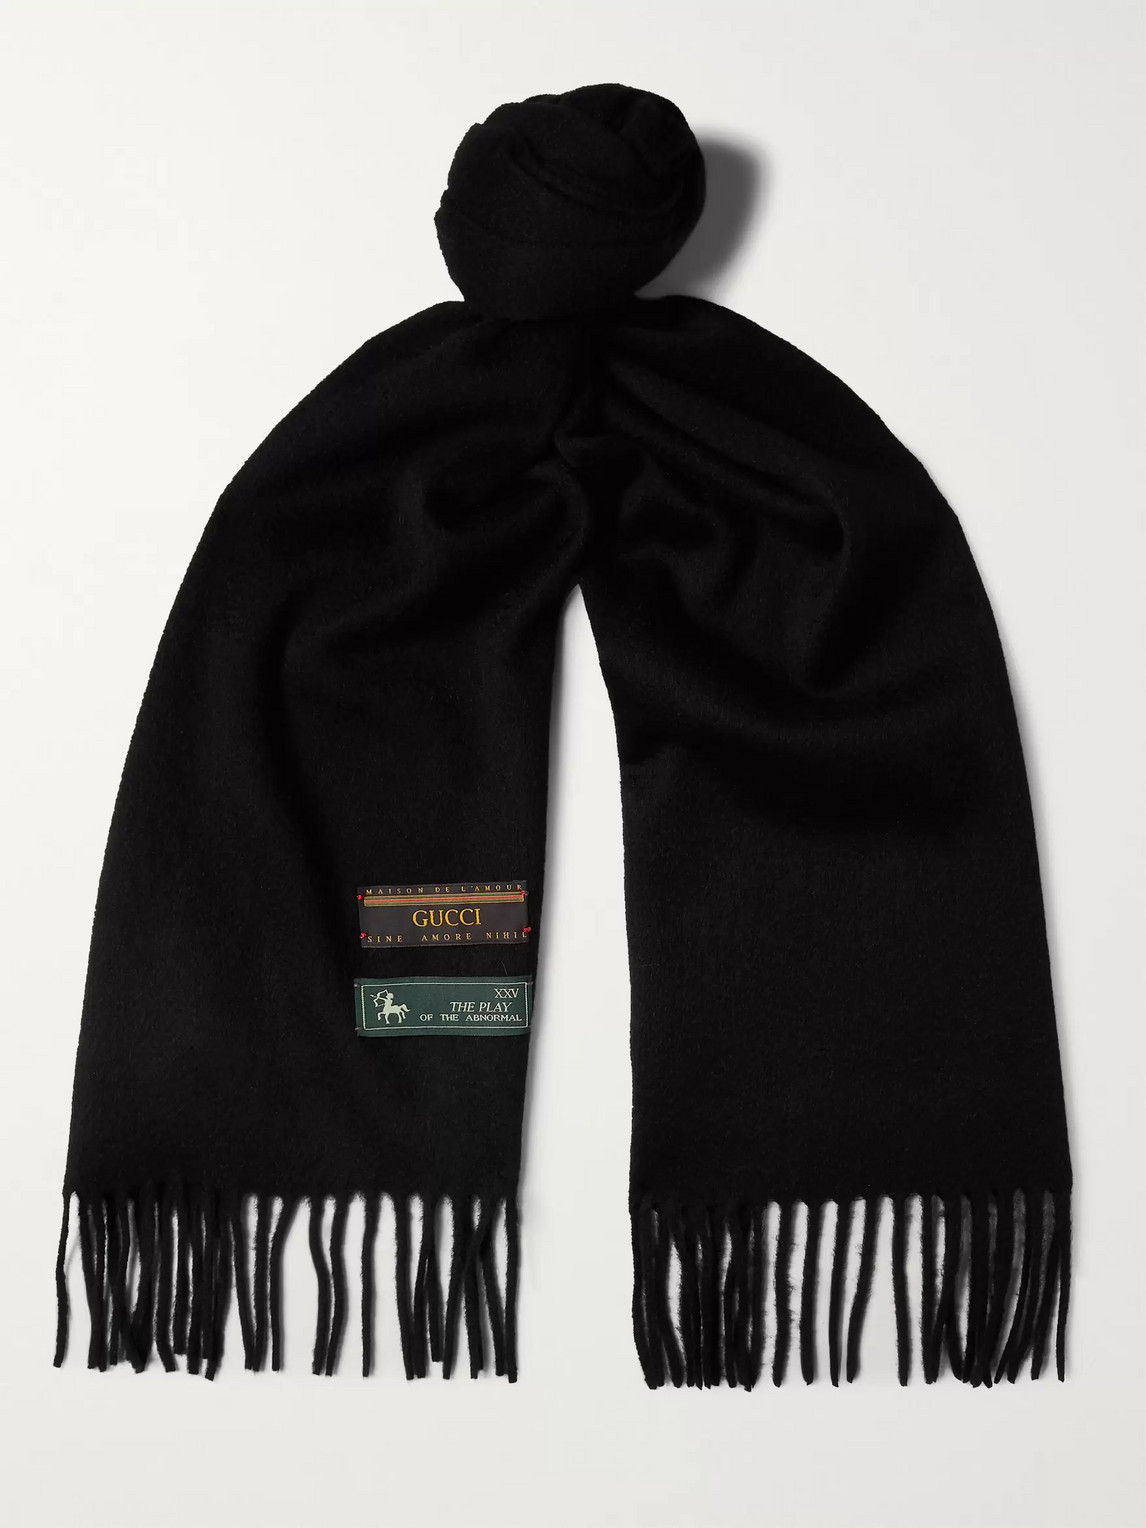 gucci - fringed wool and cashmere-blend scarf - men - black